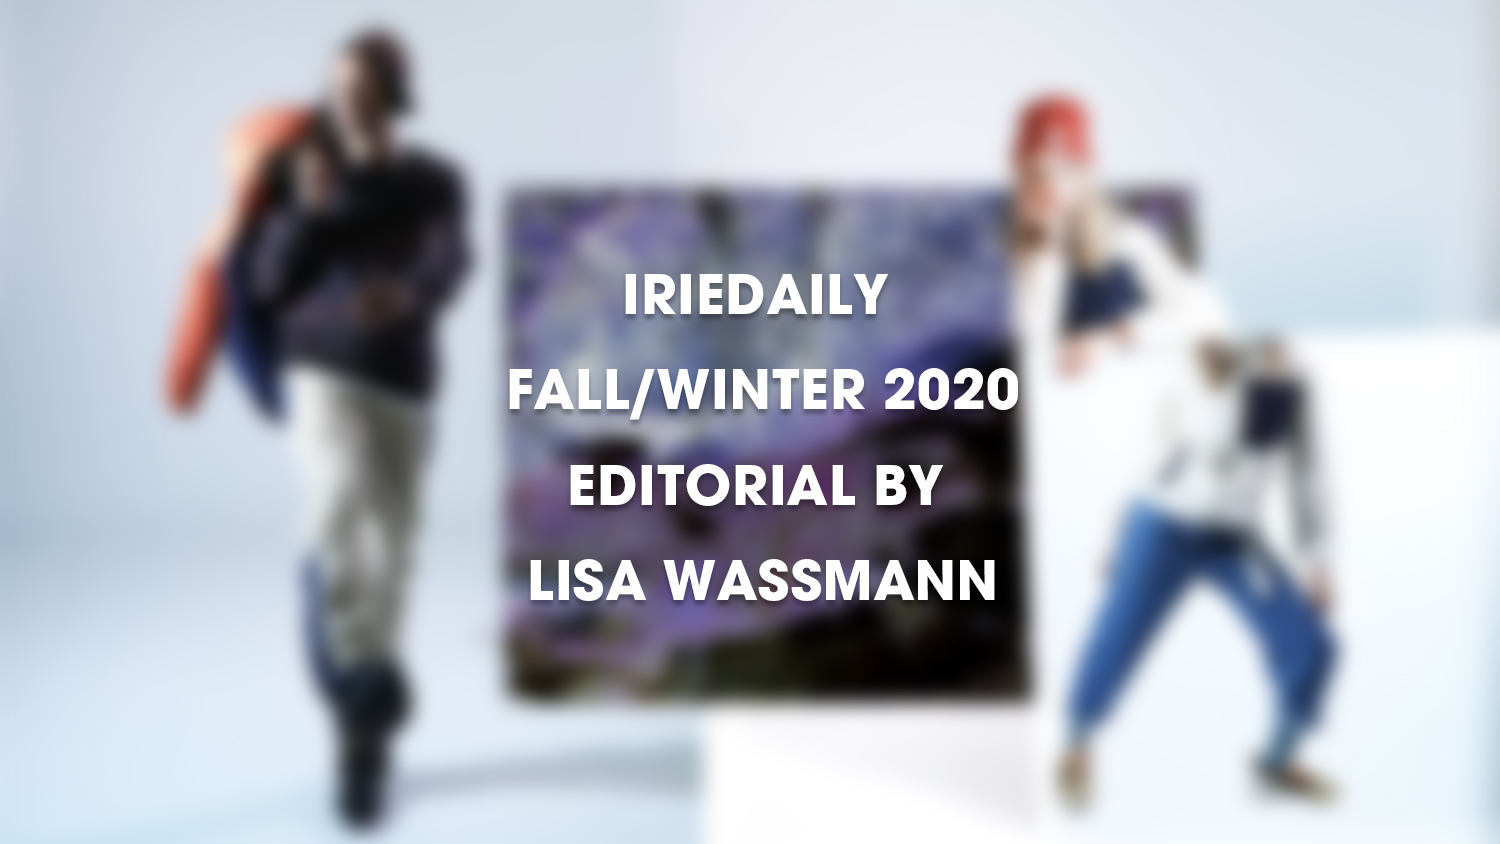 IRIEDAILY Fall/Winter Editorial by Lisa Wassmann